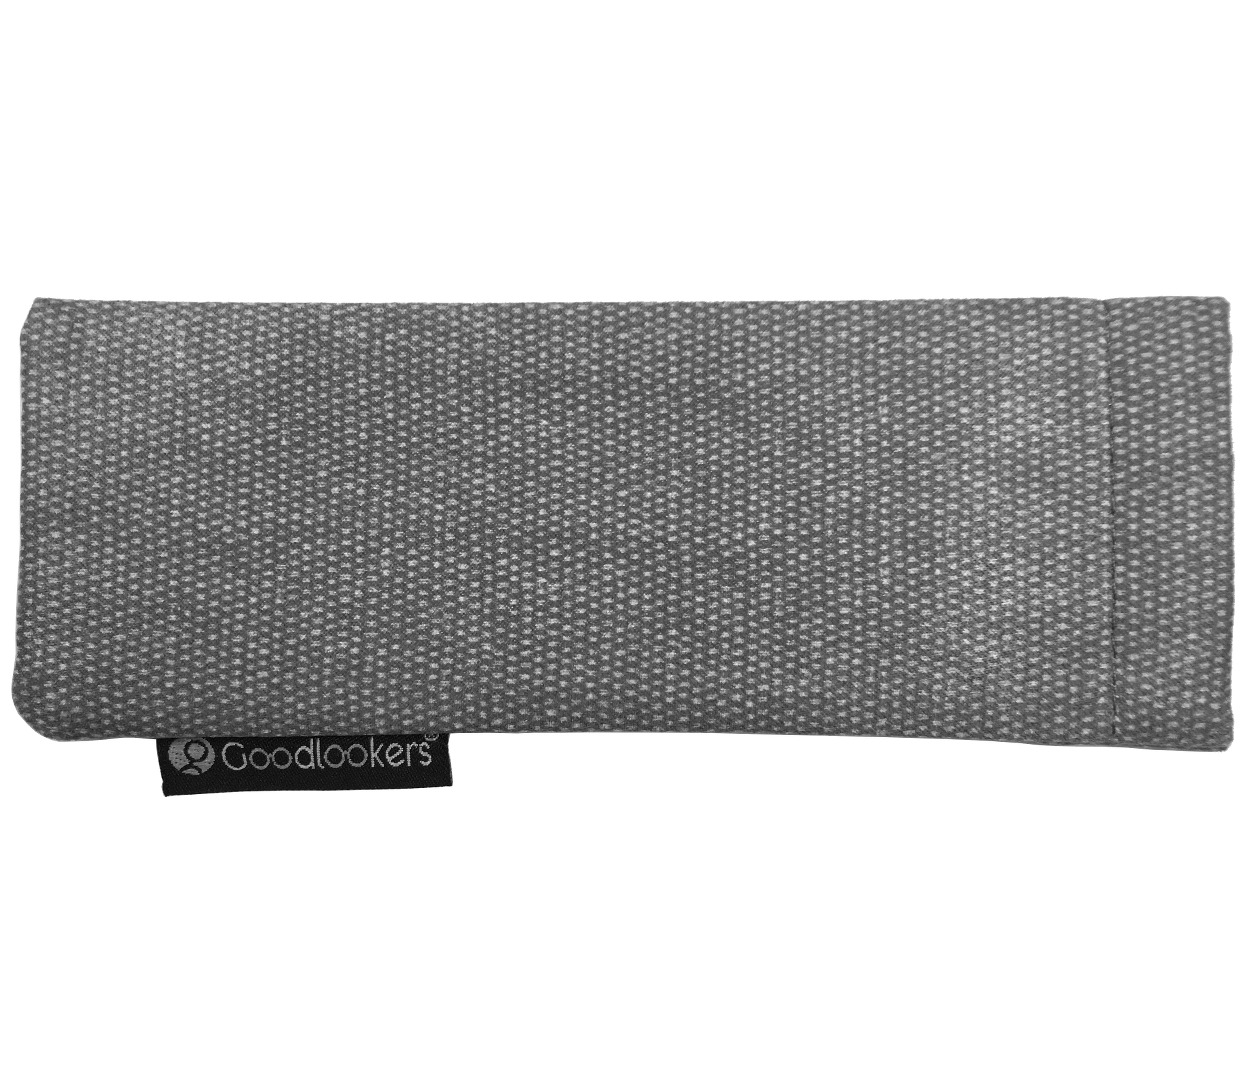 Case - Parliament (Grey)